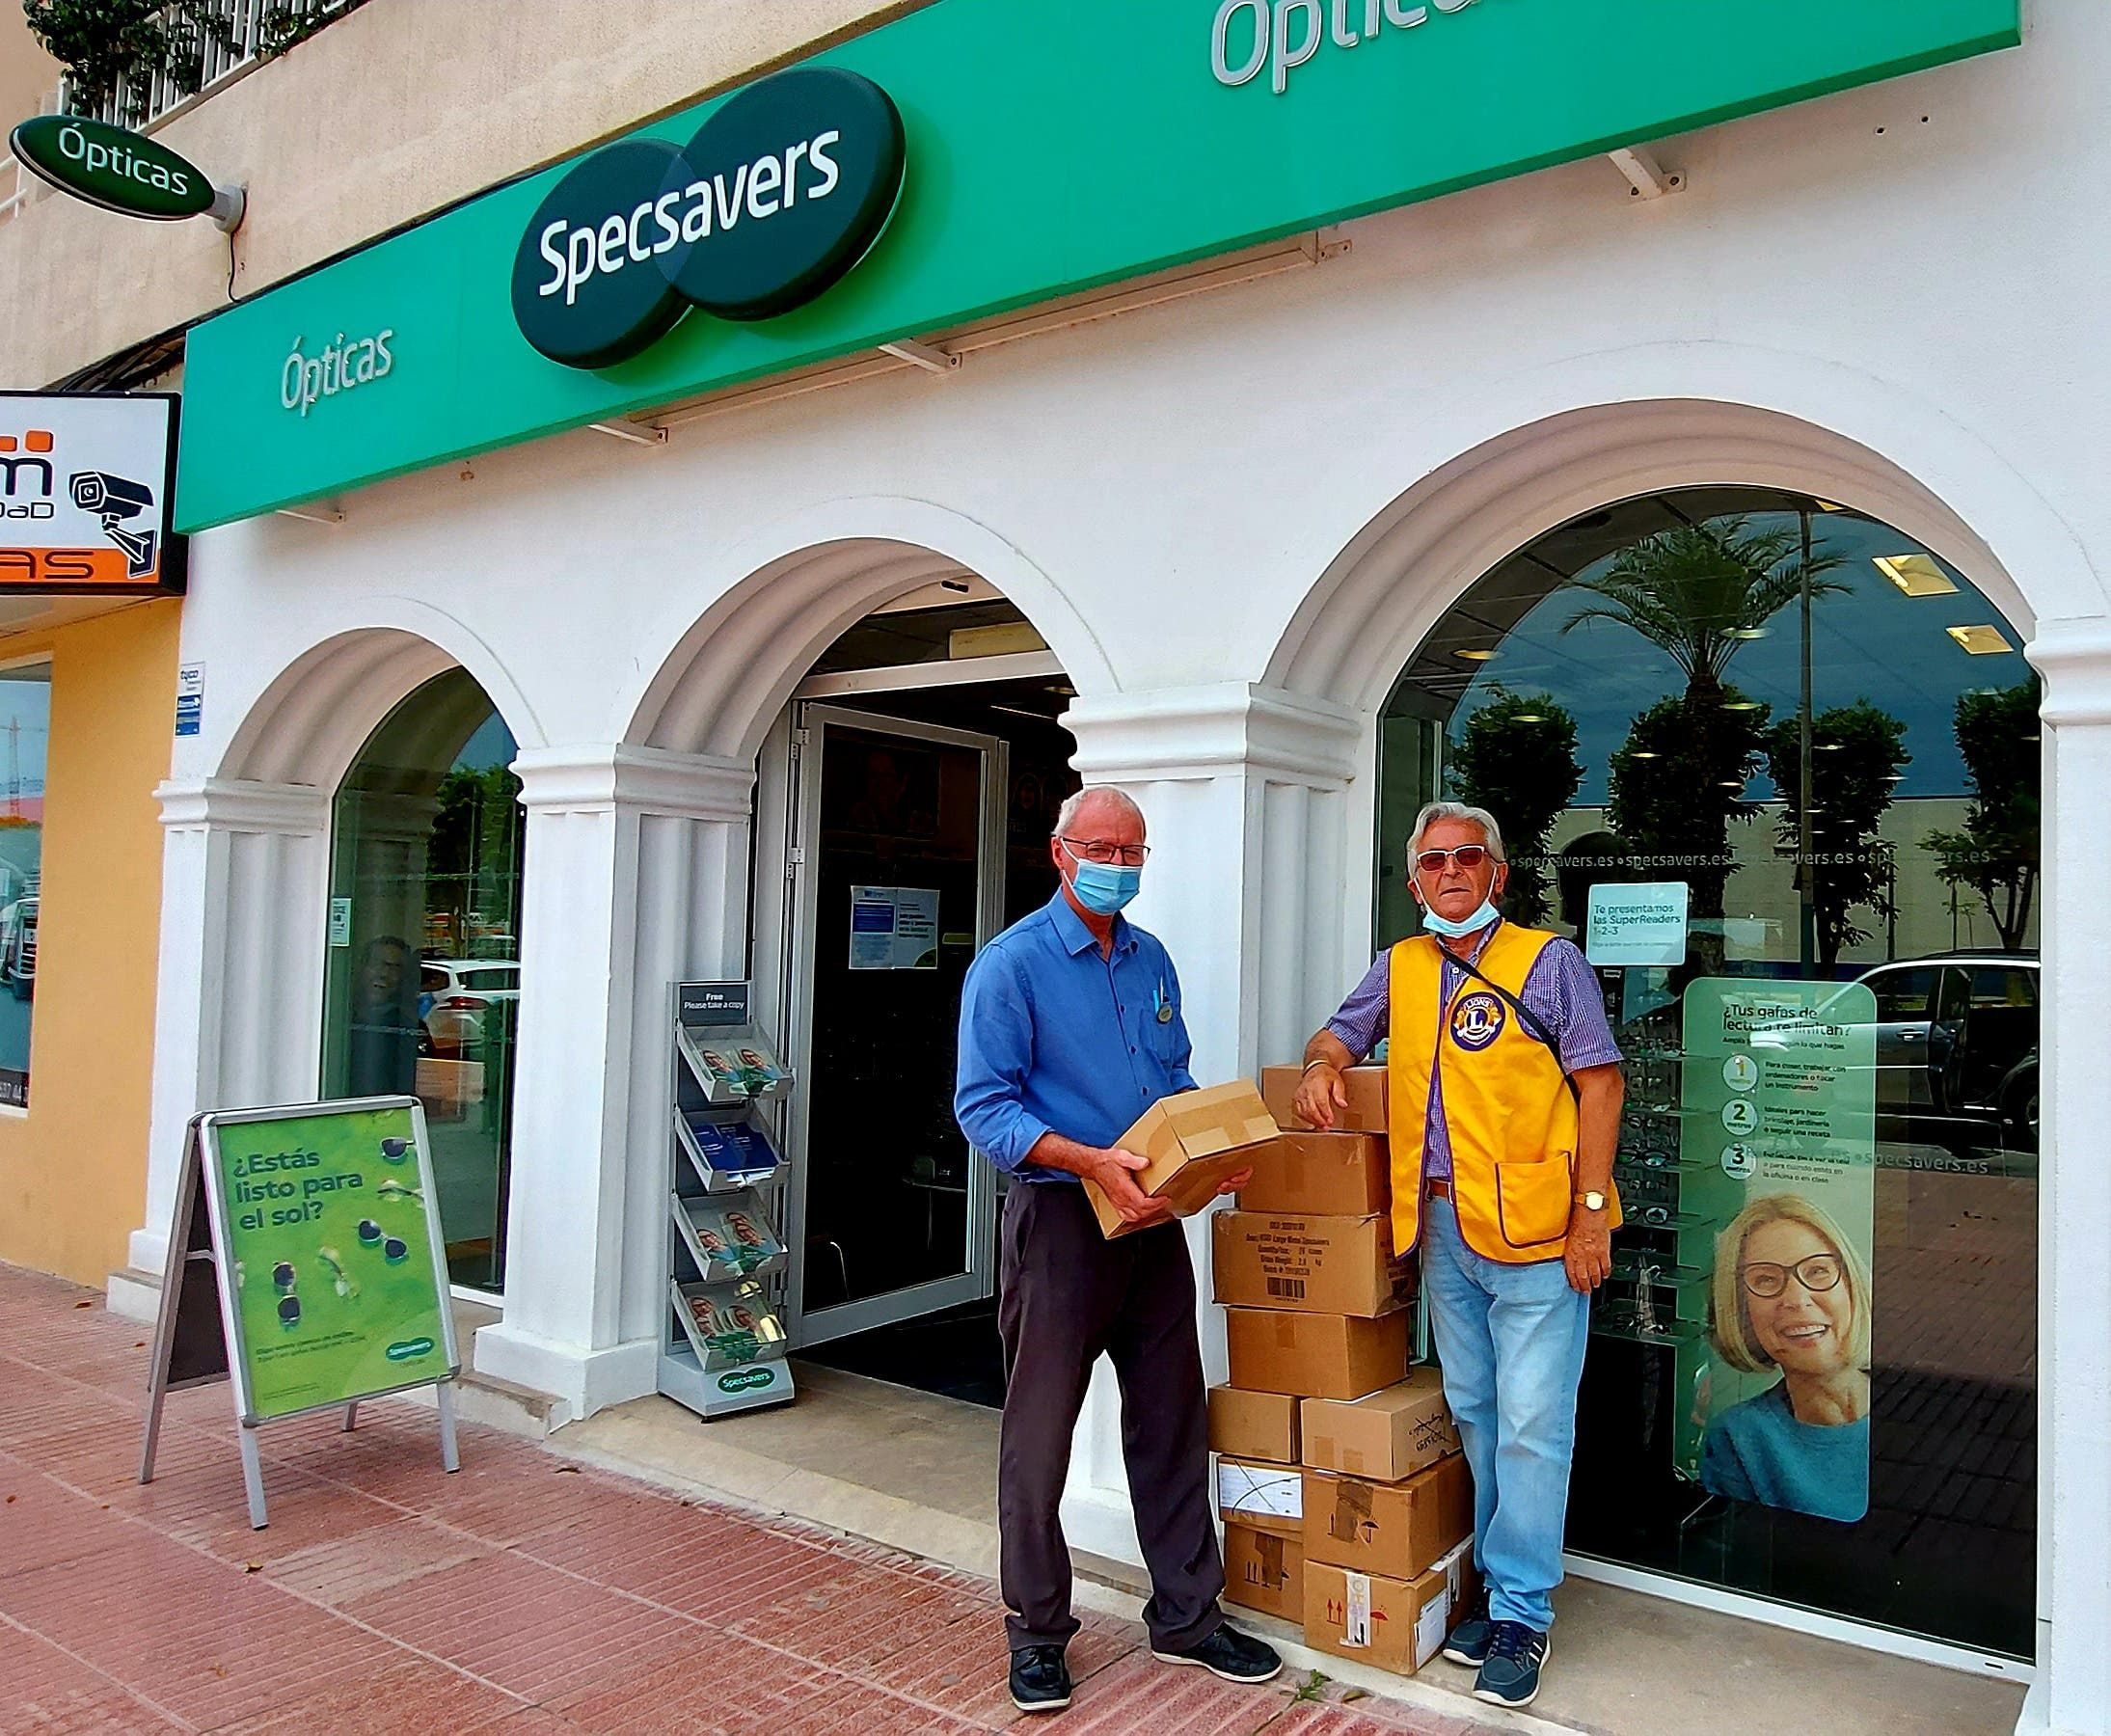 British opticians on Spain's Costa Blanca give 1,500 pairs of unwanted specs to needy around the world